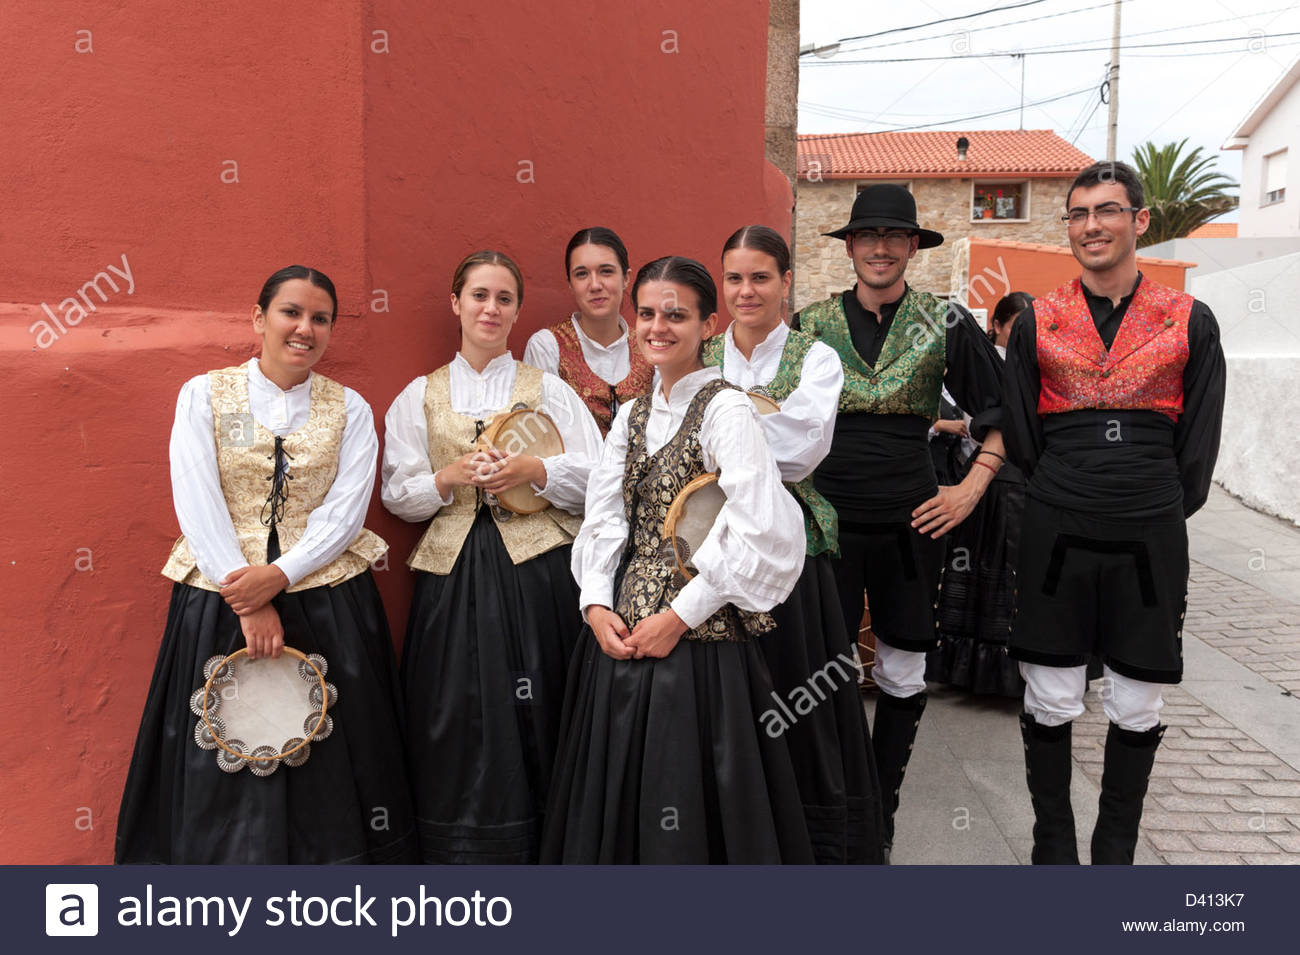 Traditional folk dancers taking a break during annual fiestas, Corrubedo, Galicia, Spain - Stock Image